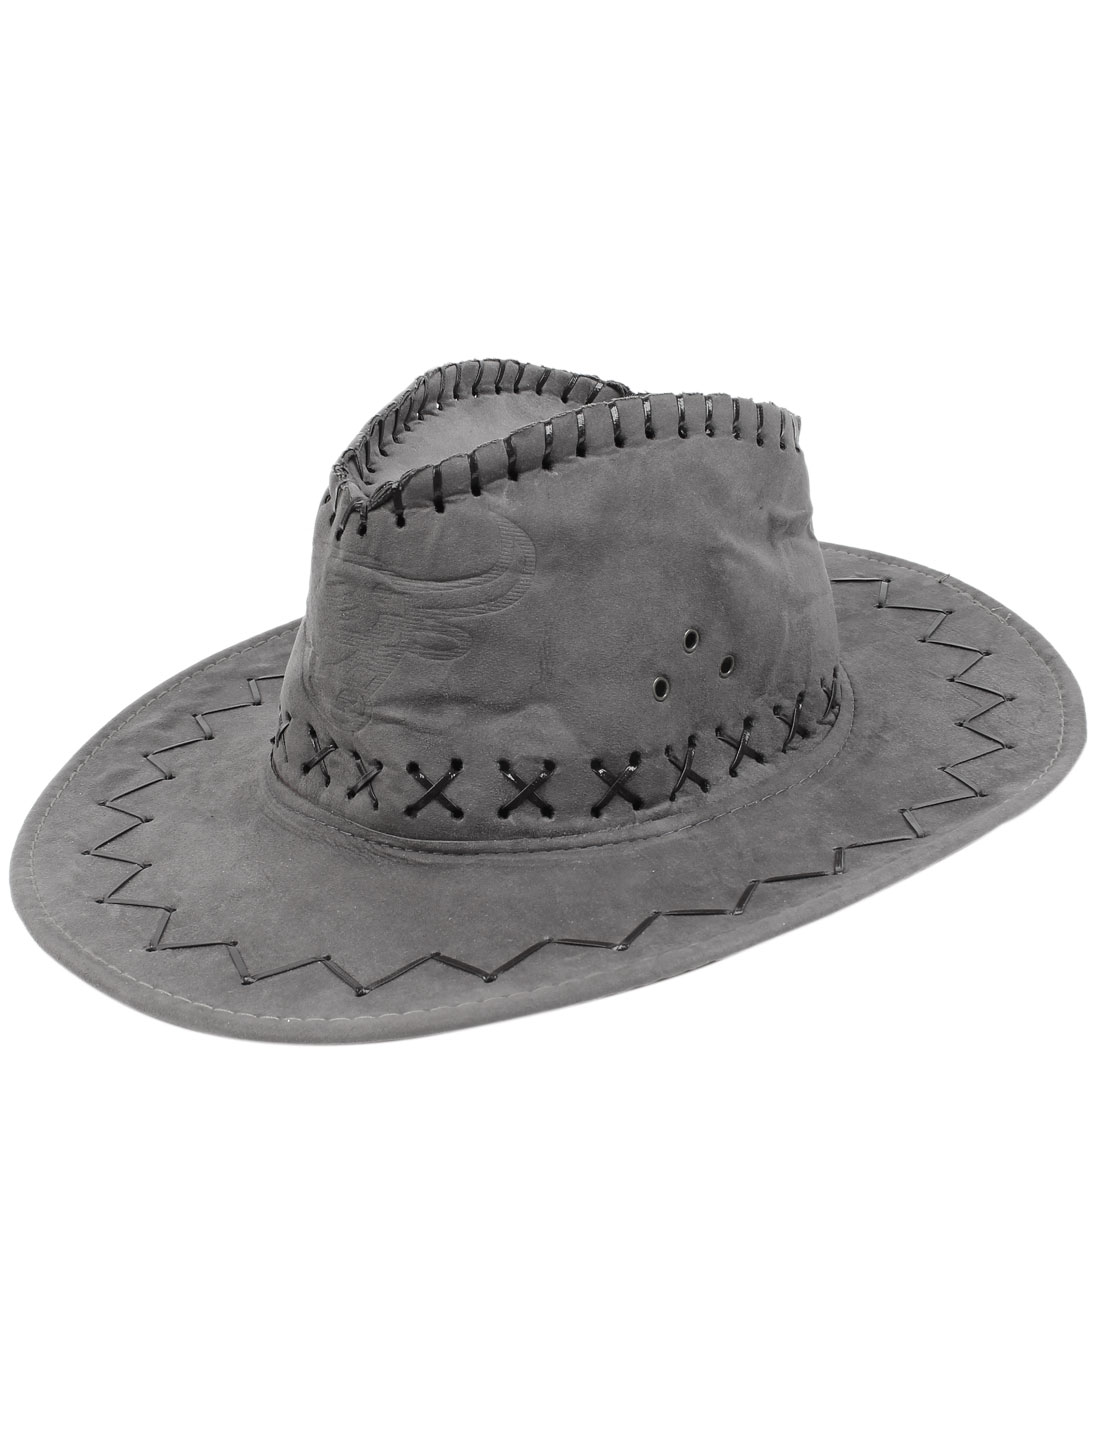 Lady Faux Suede Winding Floral Pattern 12cm Depth Multi-eyelets Cord Lock Adjustable Chin Strap Summer Travel Cowboy Hat Gray